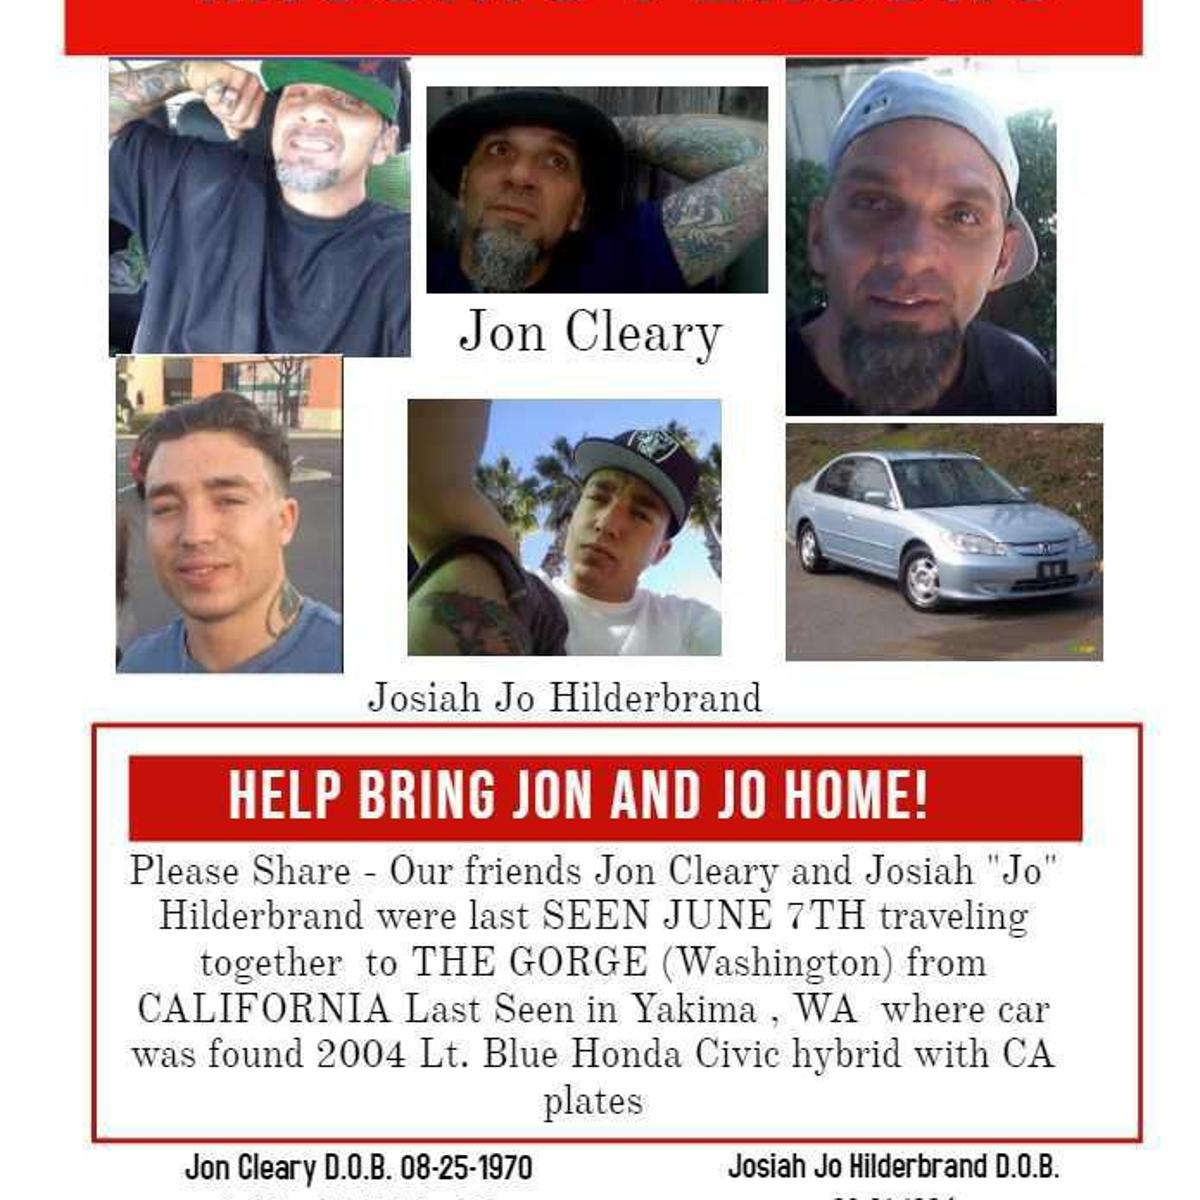 Sunday marks one month since California men went missing in